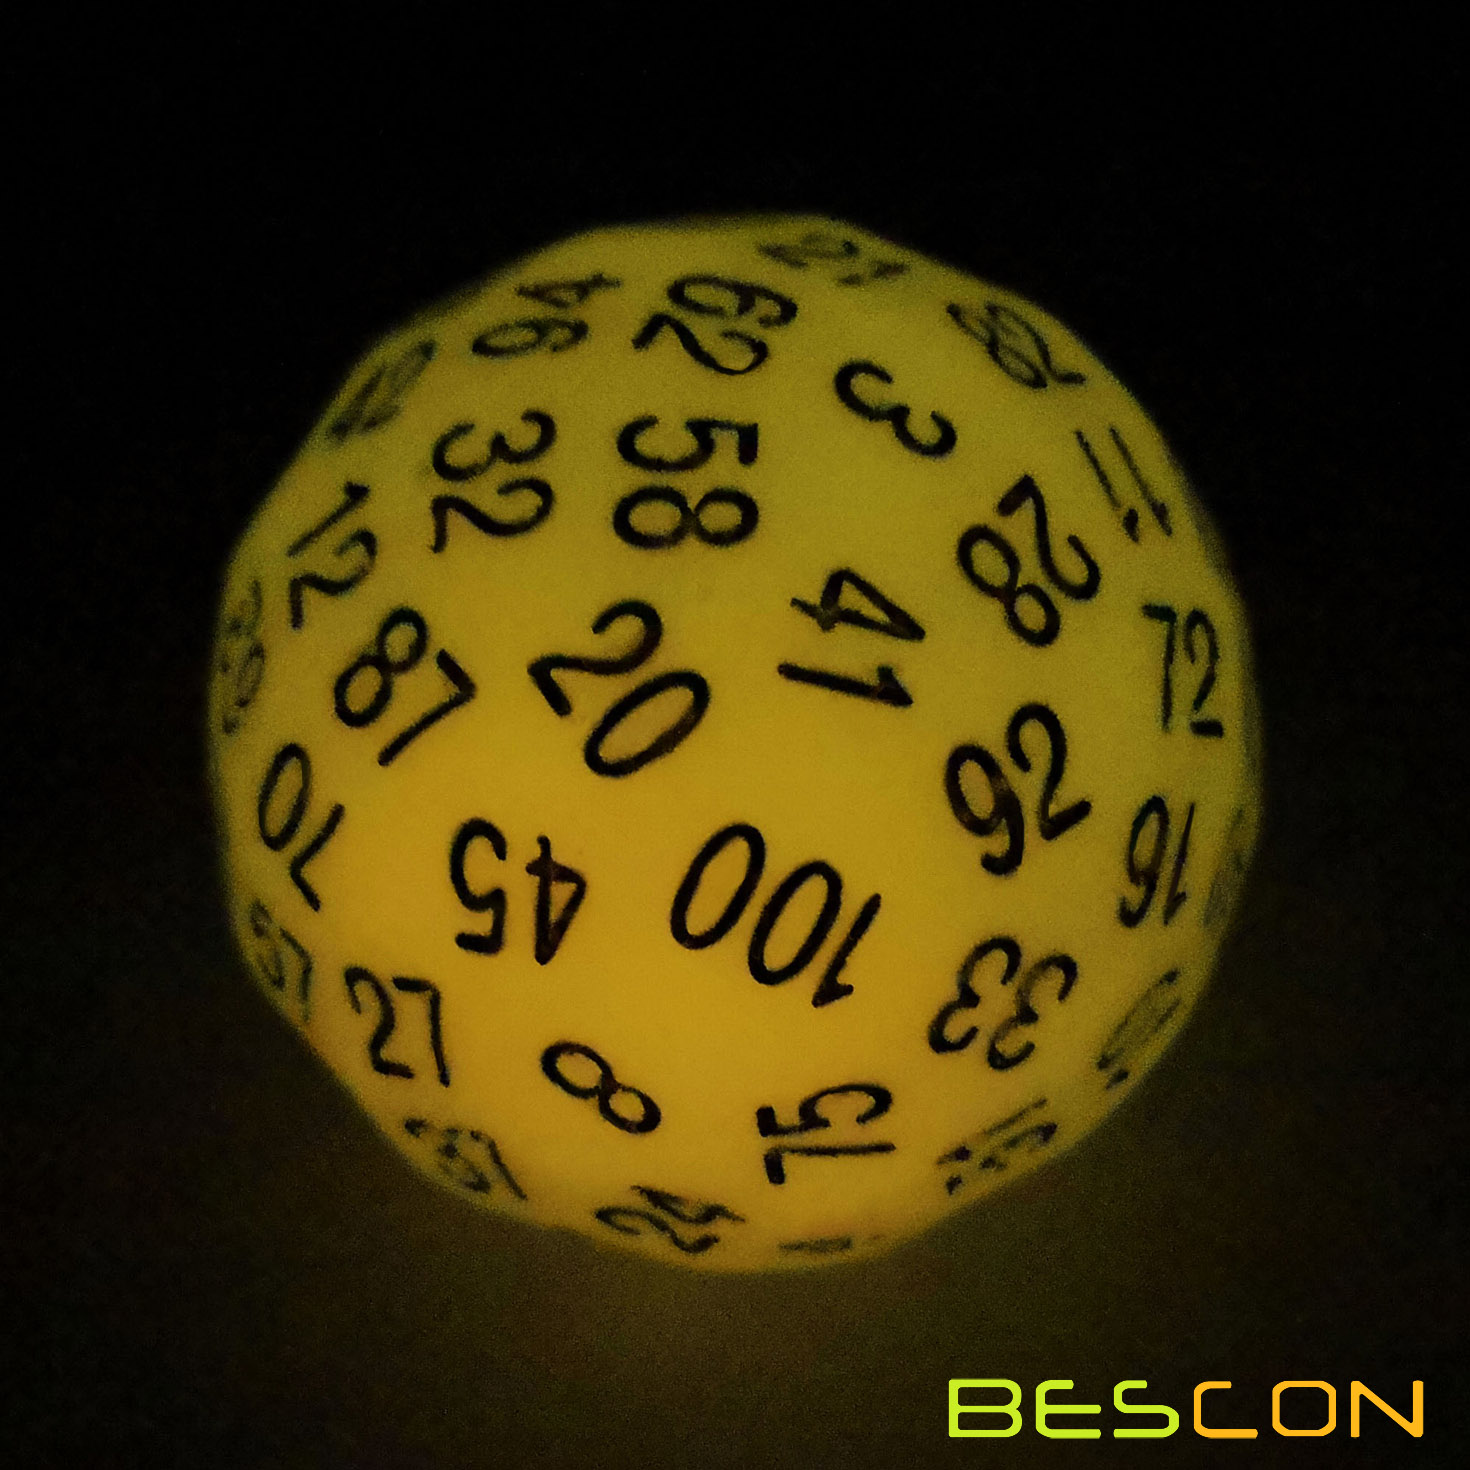 Bescon Glow in Dark Polyhedral 100 Sides Dice Glowing Yellow, Luminous D100 Dice, 100 Sided Cube, Glow-in-Dark D100 Game Dice фото